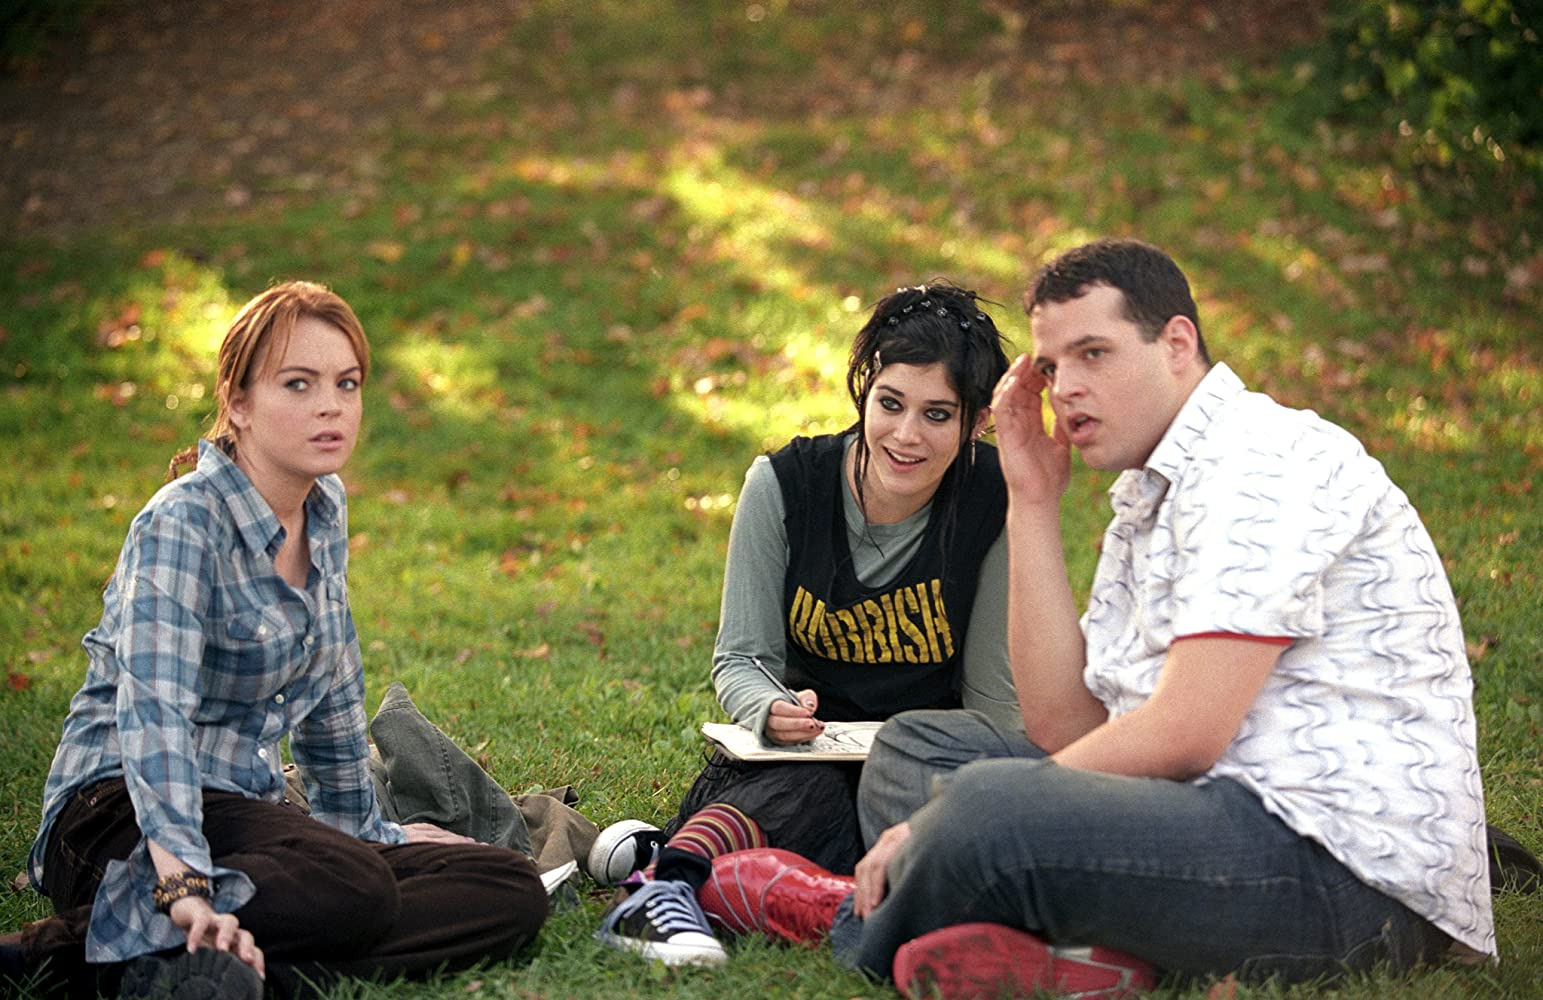 Lizzy Caplan, Daniel Franzese, and Lindsay Lohan in Mean Girls (2004)